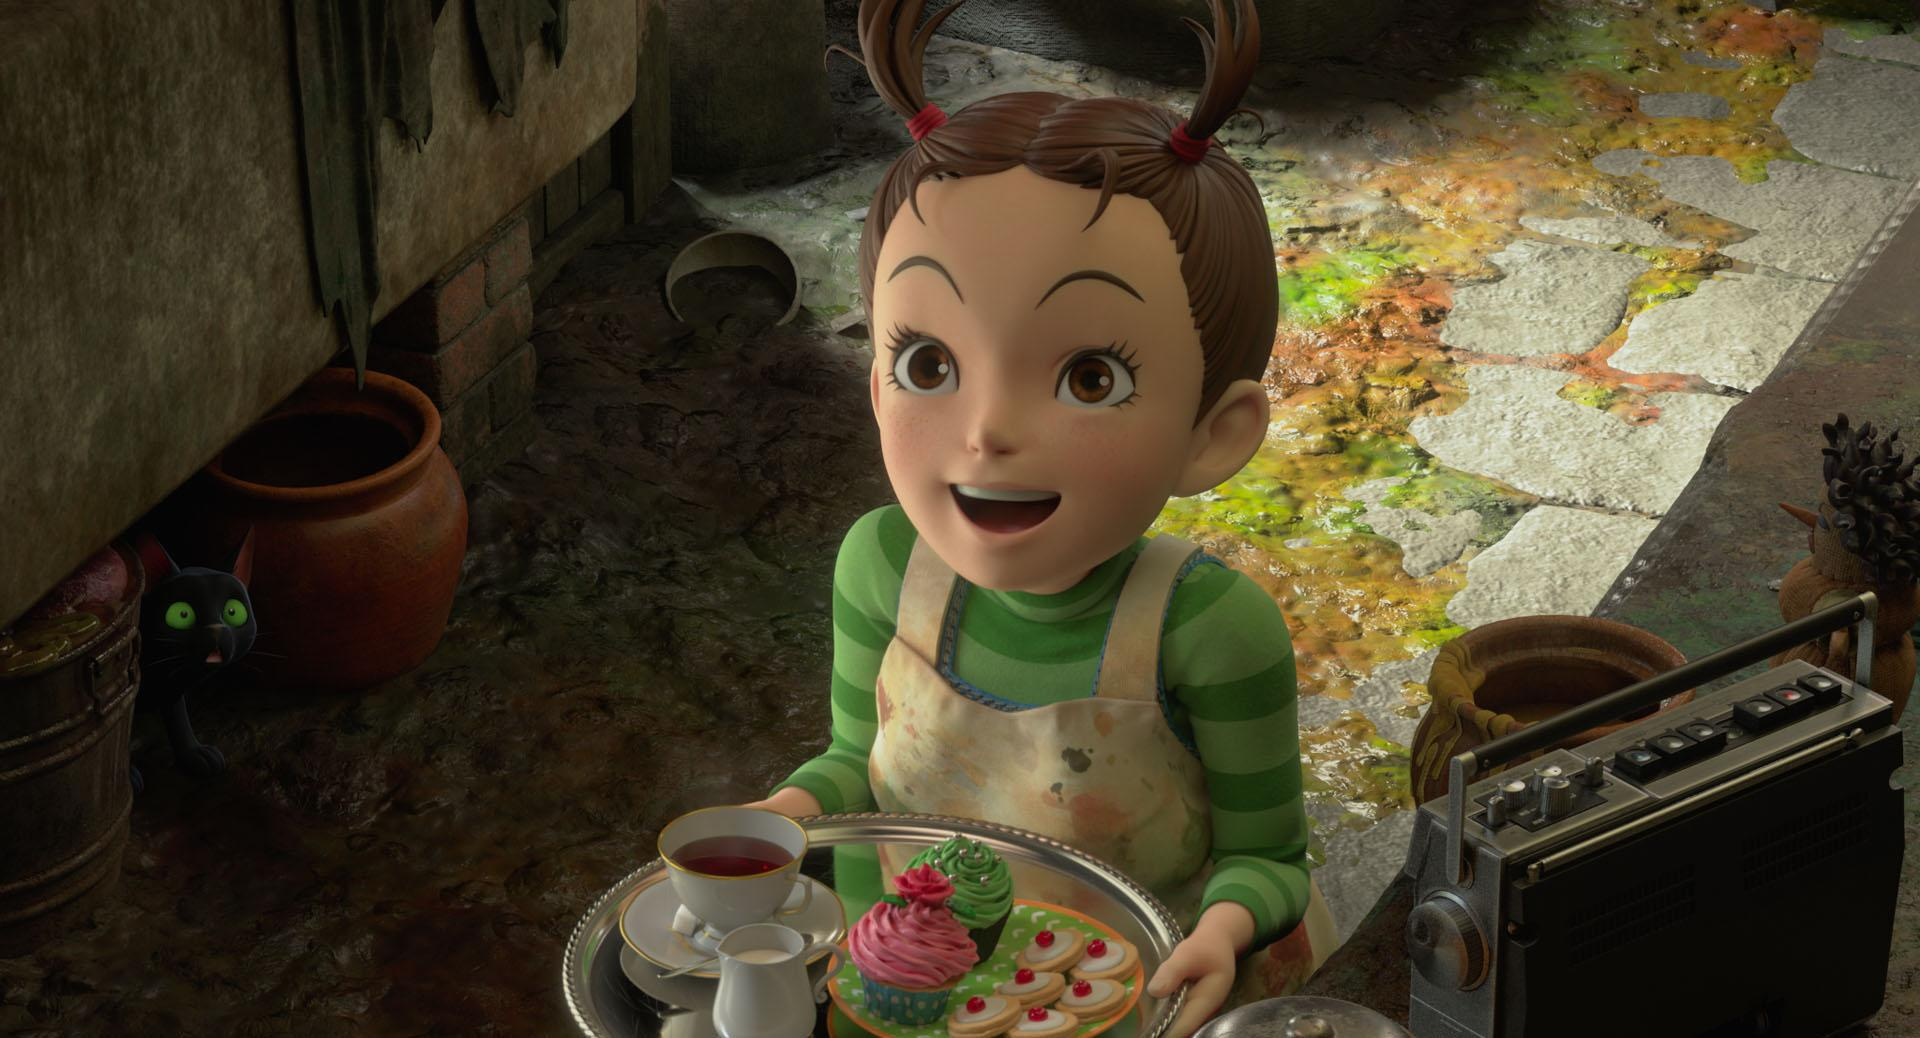 Studio Ghibli's first CG movie, 'Earwig and the Witch,' is an insult